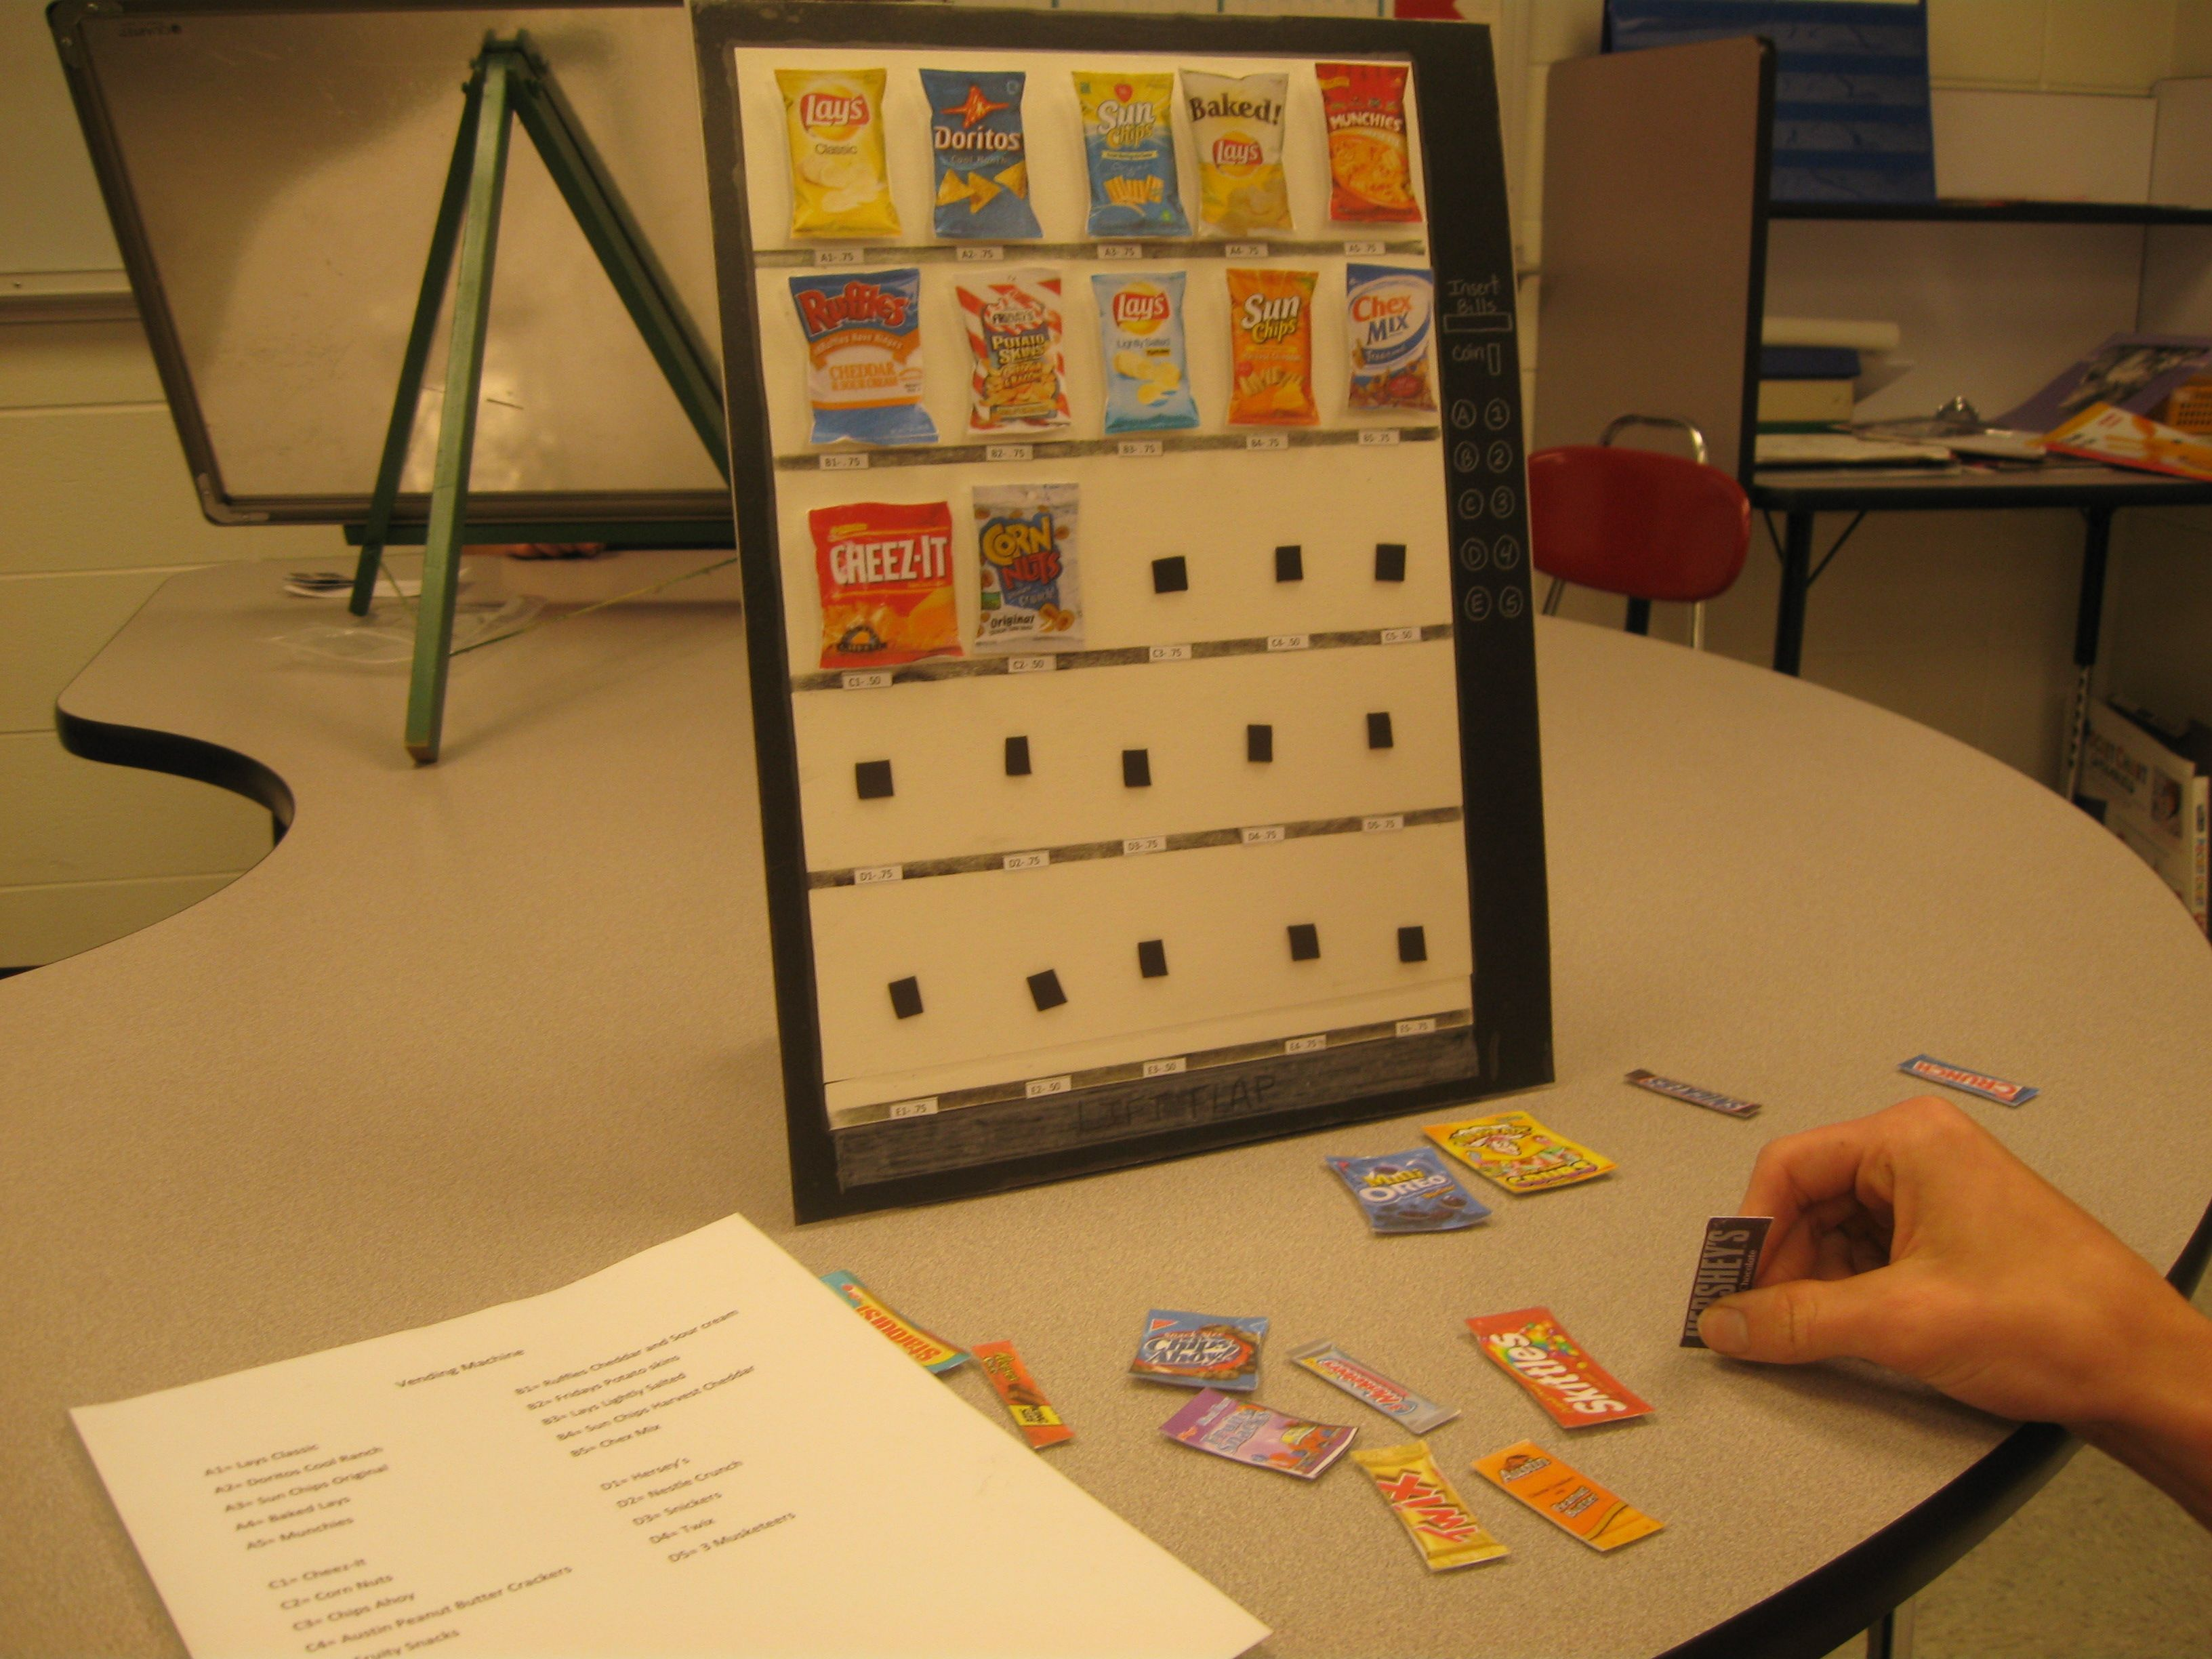 Vending Vocational Task More Great Ideas In Table Top Tasks At Lulu